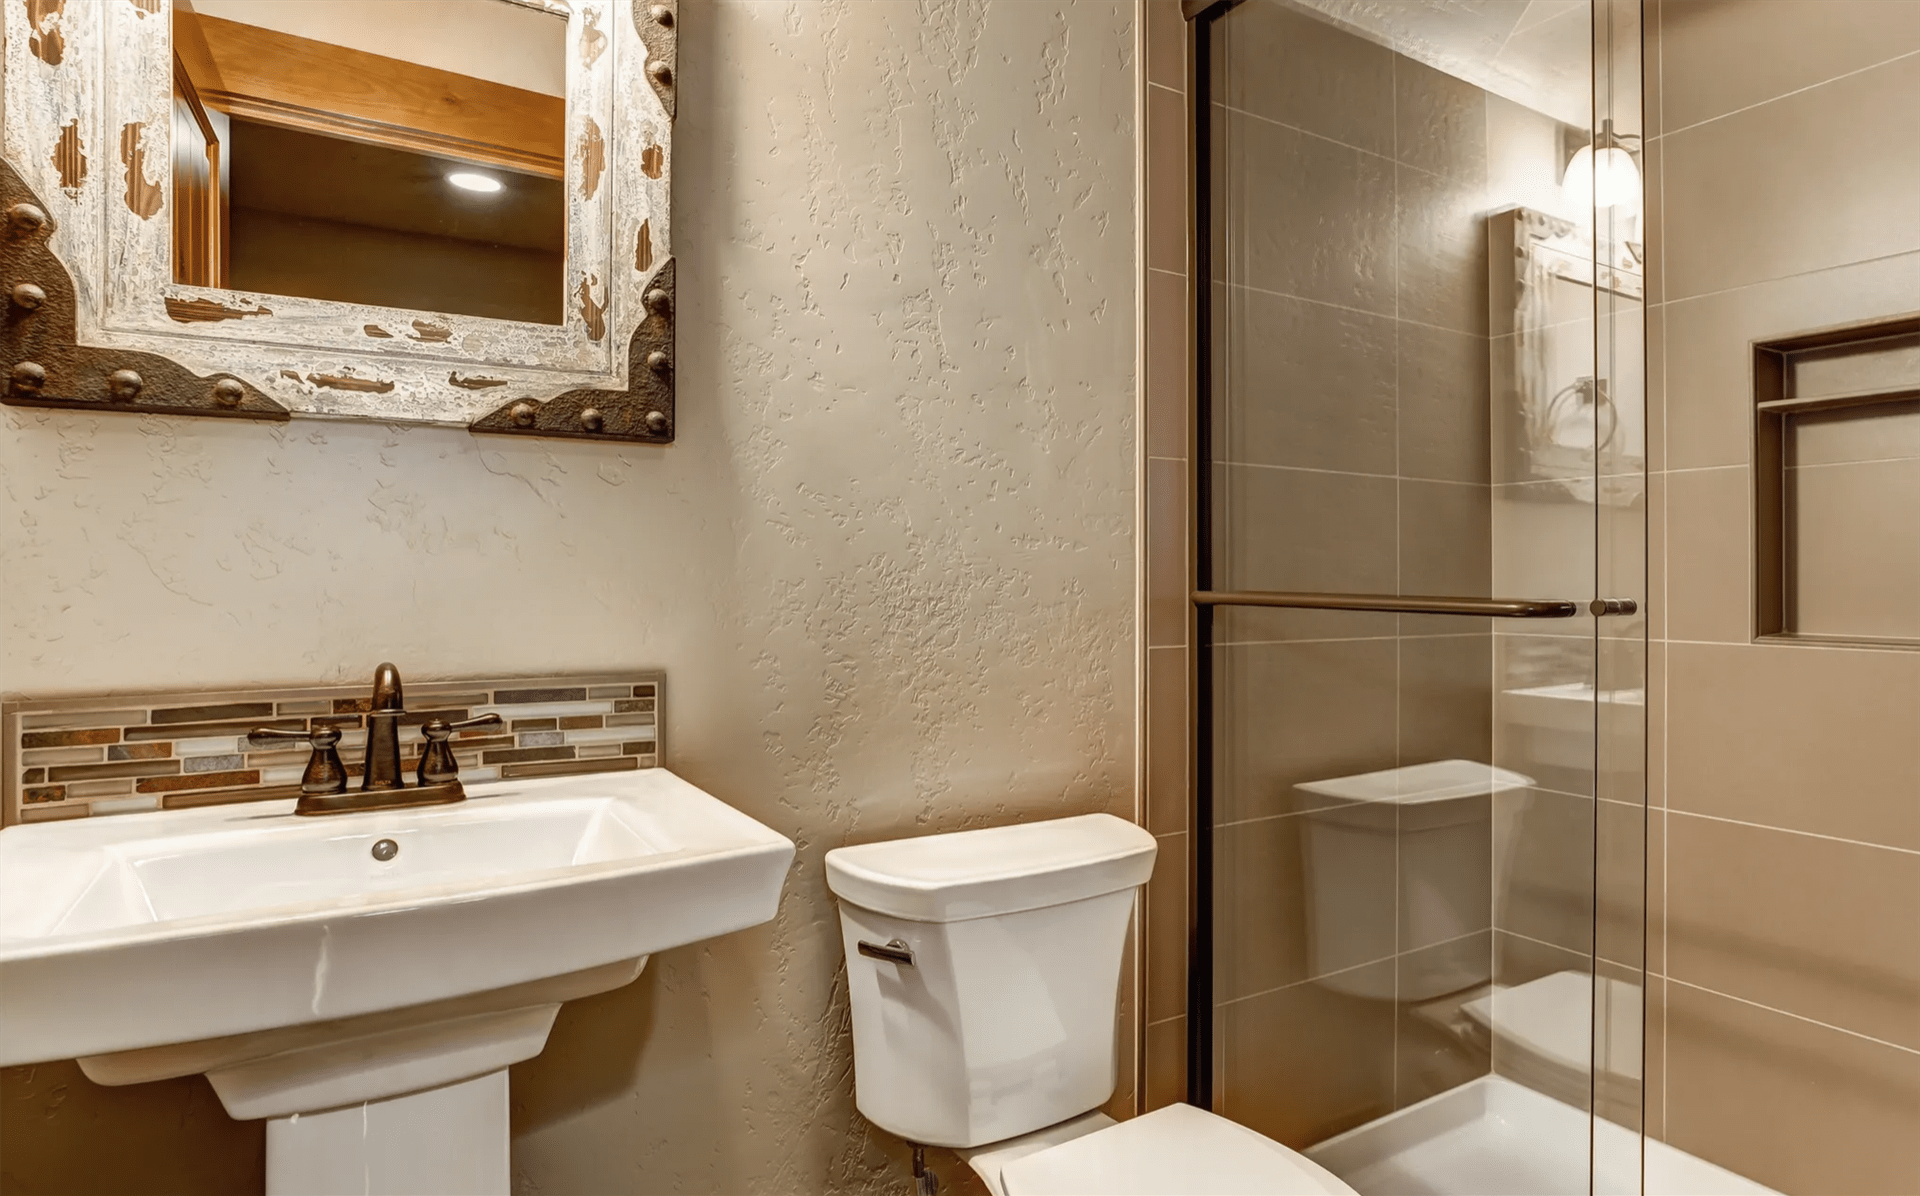 Tiles from HomePort Interiors in Ferndale, WA